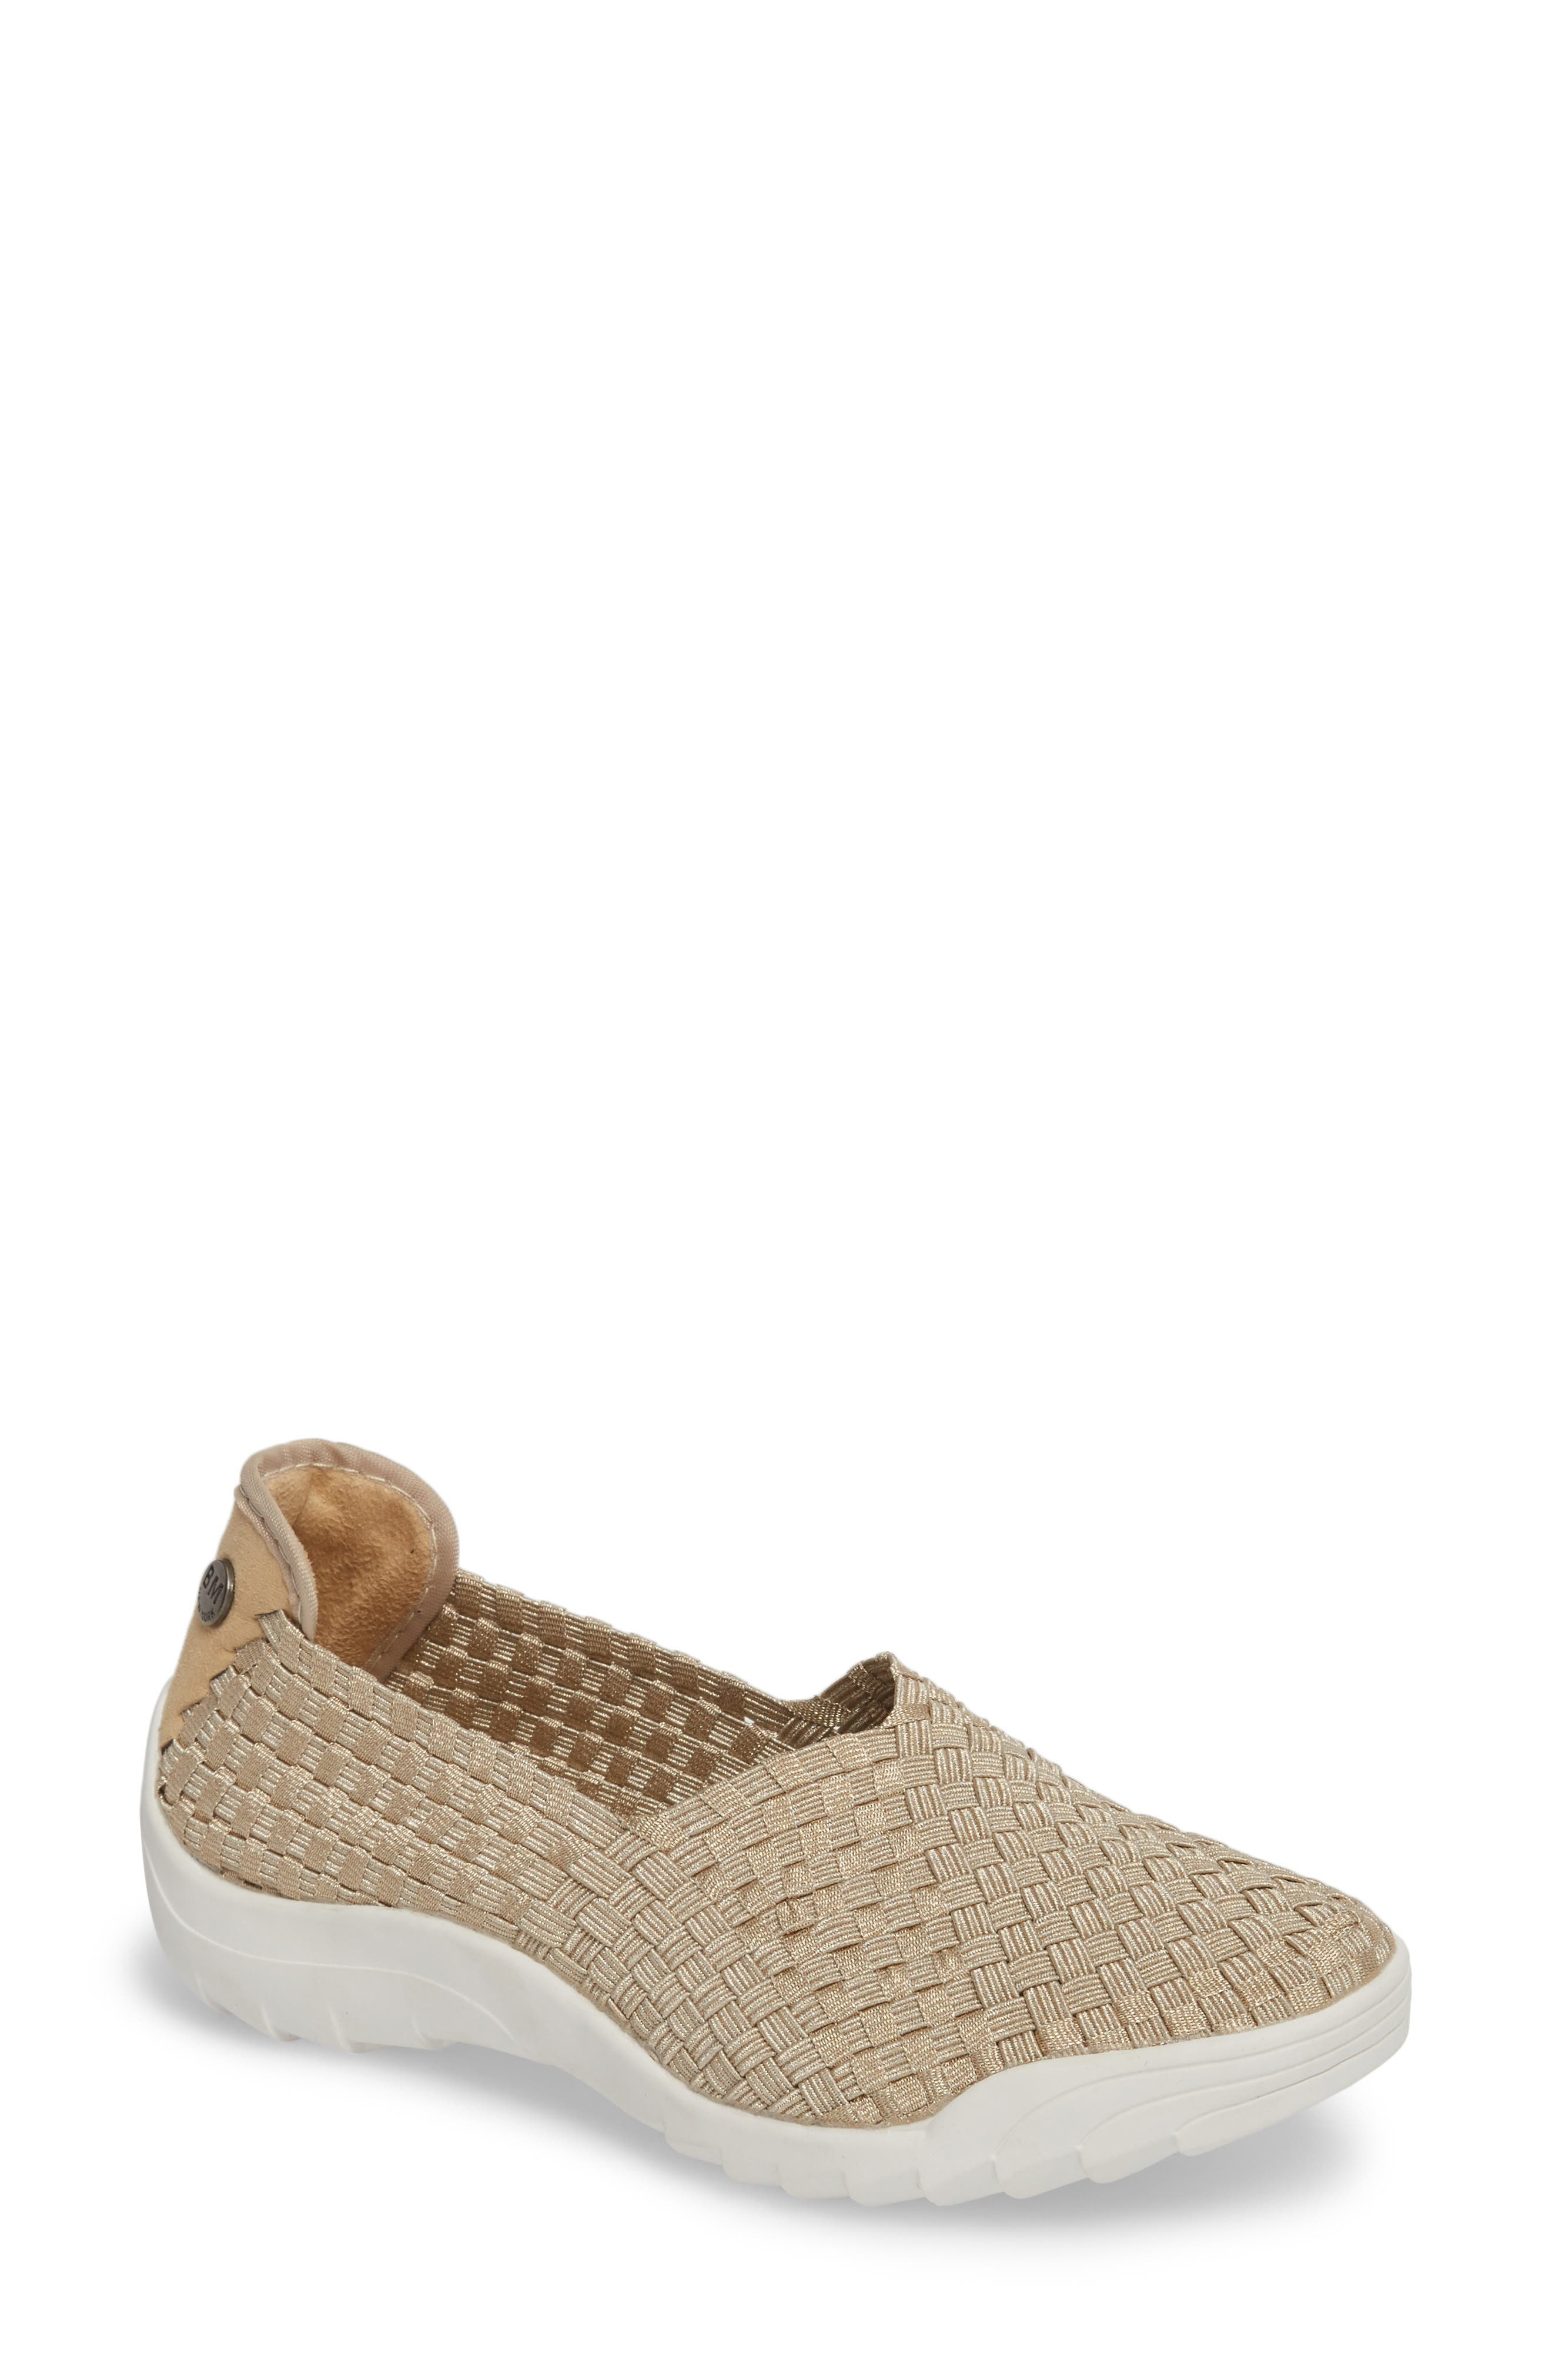 Stretchy basket-weave fabric and a cushy memory-foam footbed are sure to make this super-comfortable sneaker your go-to casual shoe all season long. Style Name: Bernie Mev. Rigged Fly Slip-On Sneaker (Women). Style Number: 5299968. Available in stores.